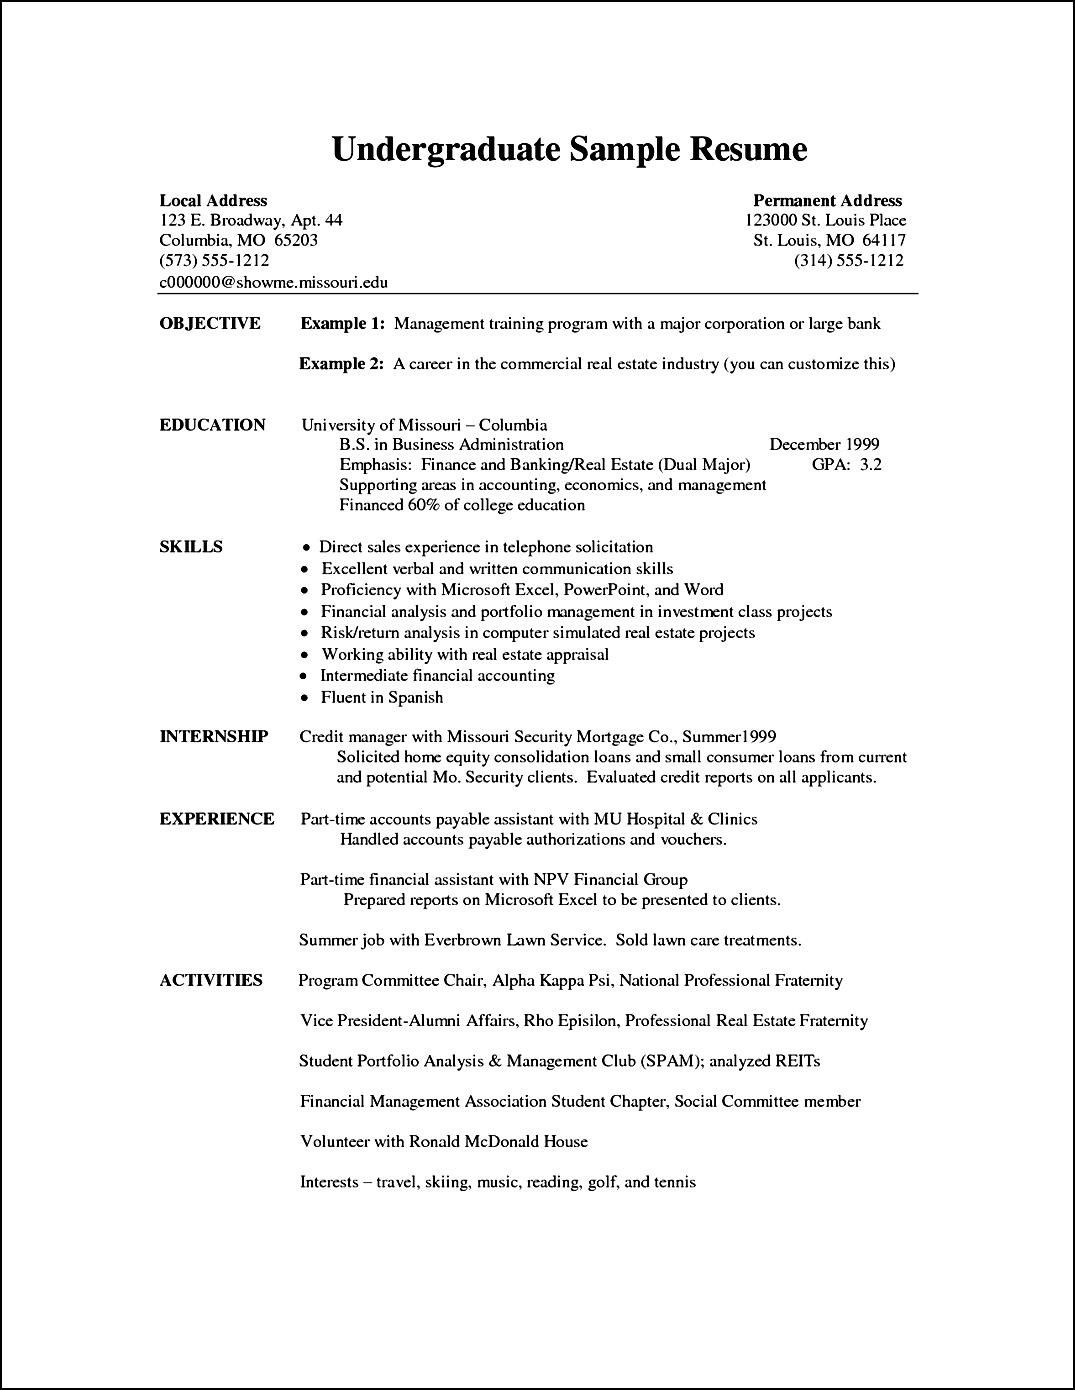 Current College Student Resume Sample Resume Undergraduate Cover Letter For Vitae  Home Design